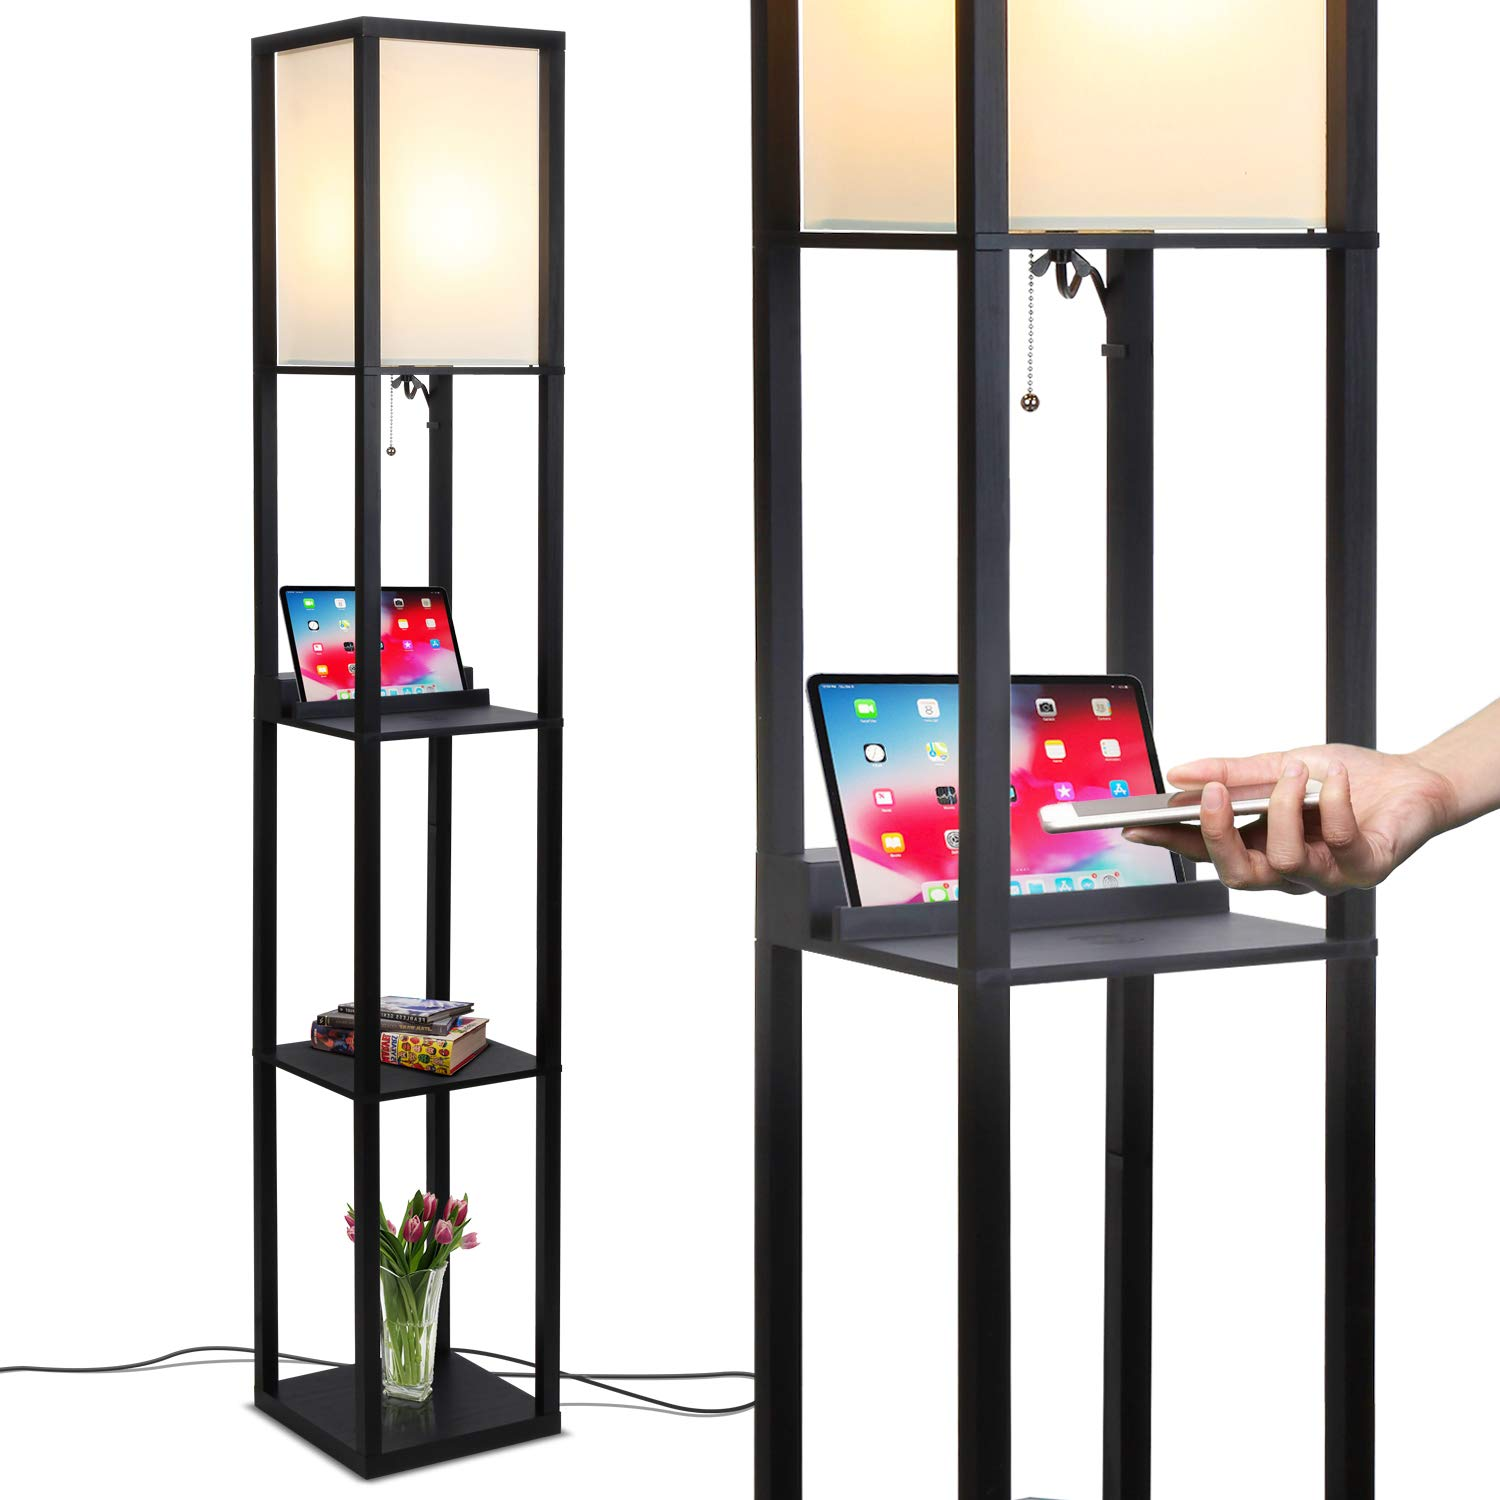 Brightech Maxwell LED Shelf Floor Lamp with Wireless Charging Pad - for Living Rooms & Bedrooms, 2 USB Ports & 1 Electric Outlet - Modern Standing Light - Asian Display Shelves - Classic Black